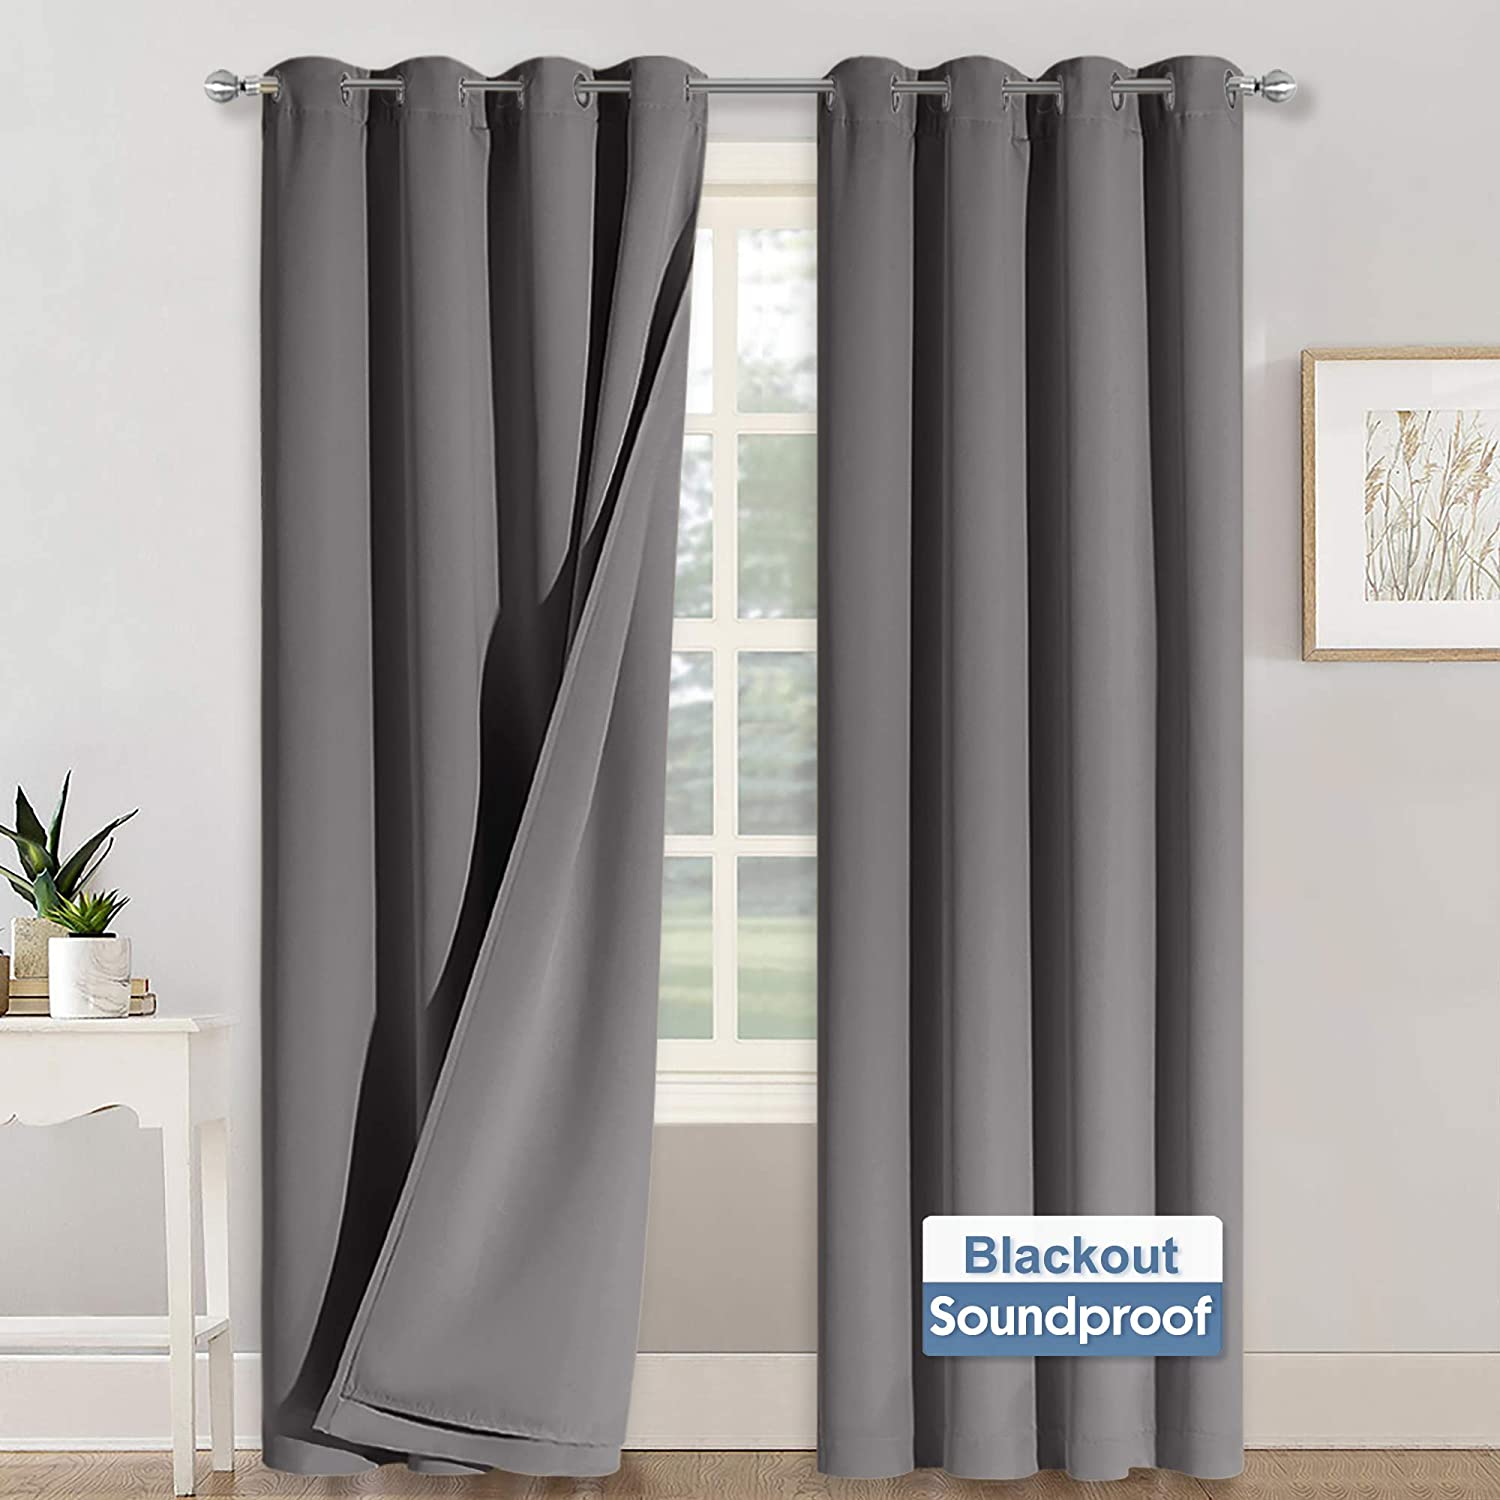 RYB HOME Thermal Curtains Soundproof - 3-in-1 Curtains Noise Barrier - 100% Blackout - Thermal Insulated Curtains for Bedroom Room Divider High Ceiling Window Decor, 52 x 95 inch Long, Grey, 2 Pcs